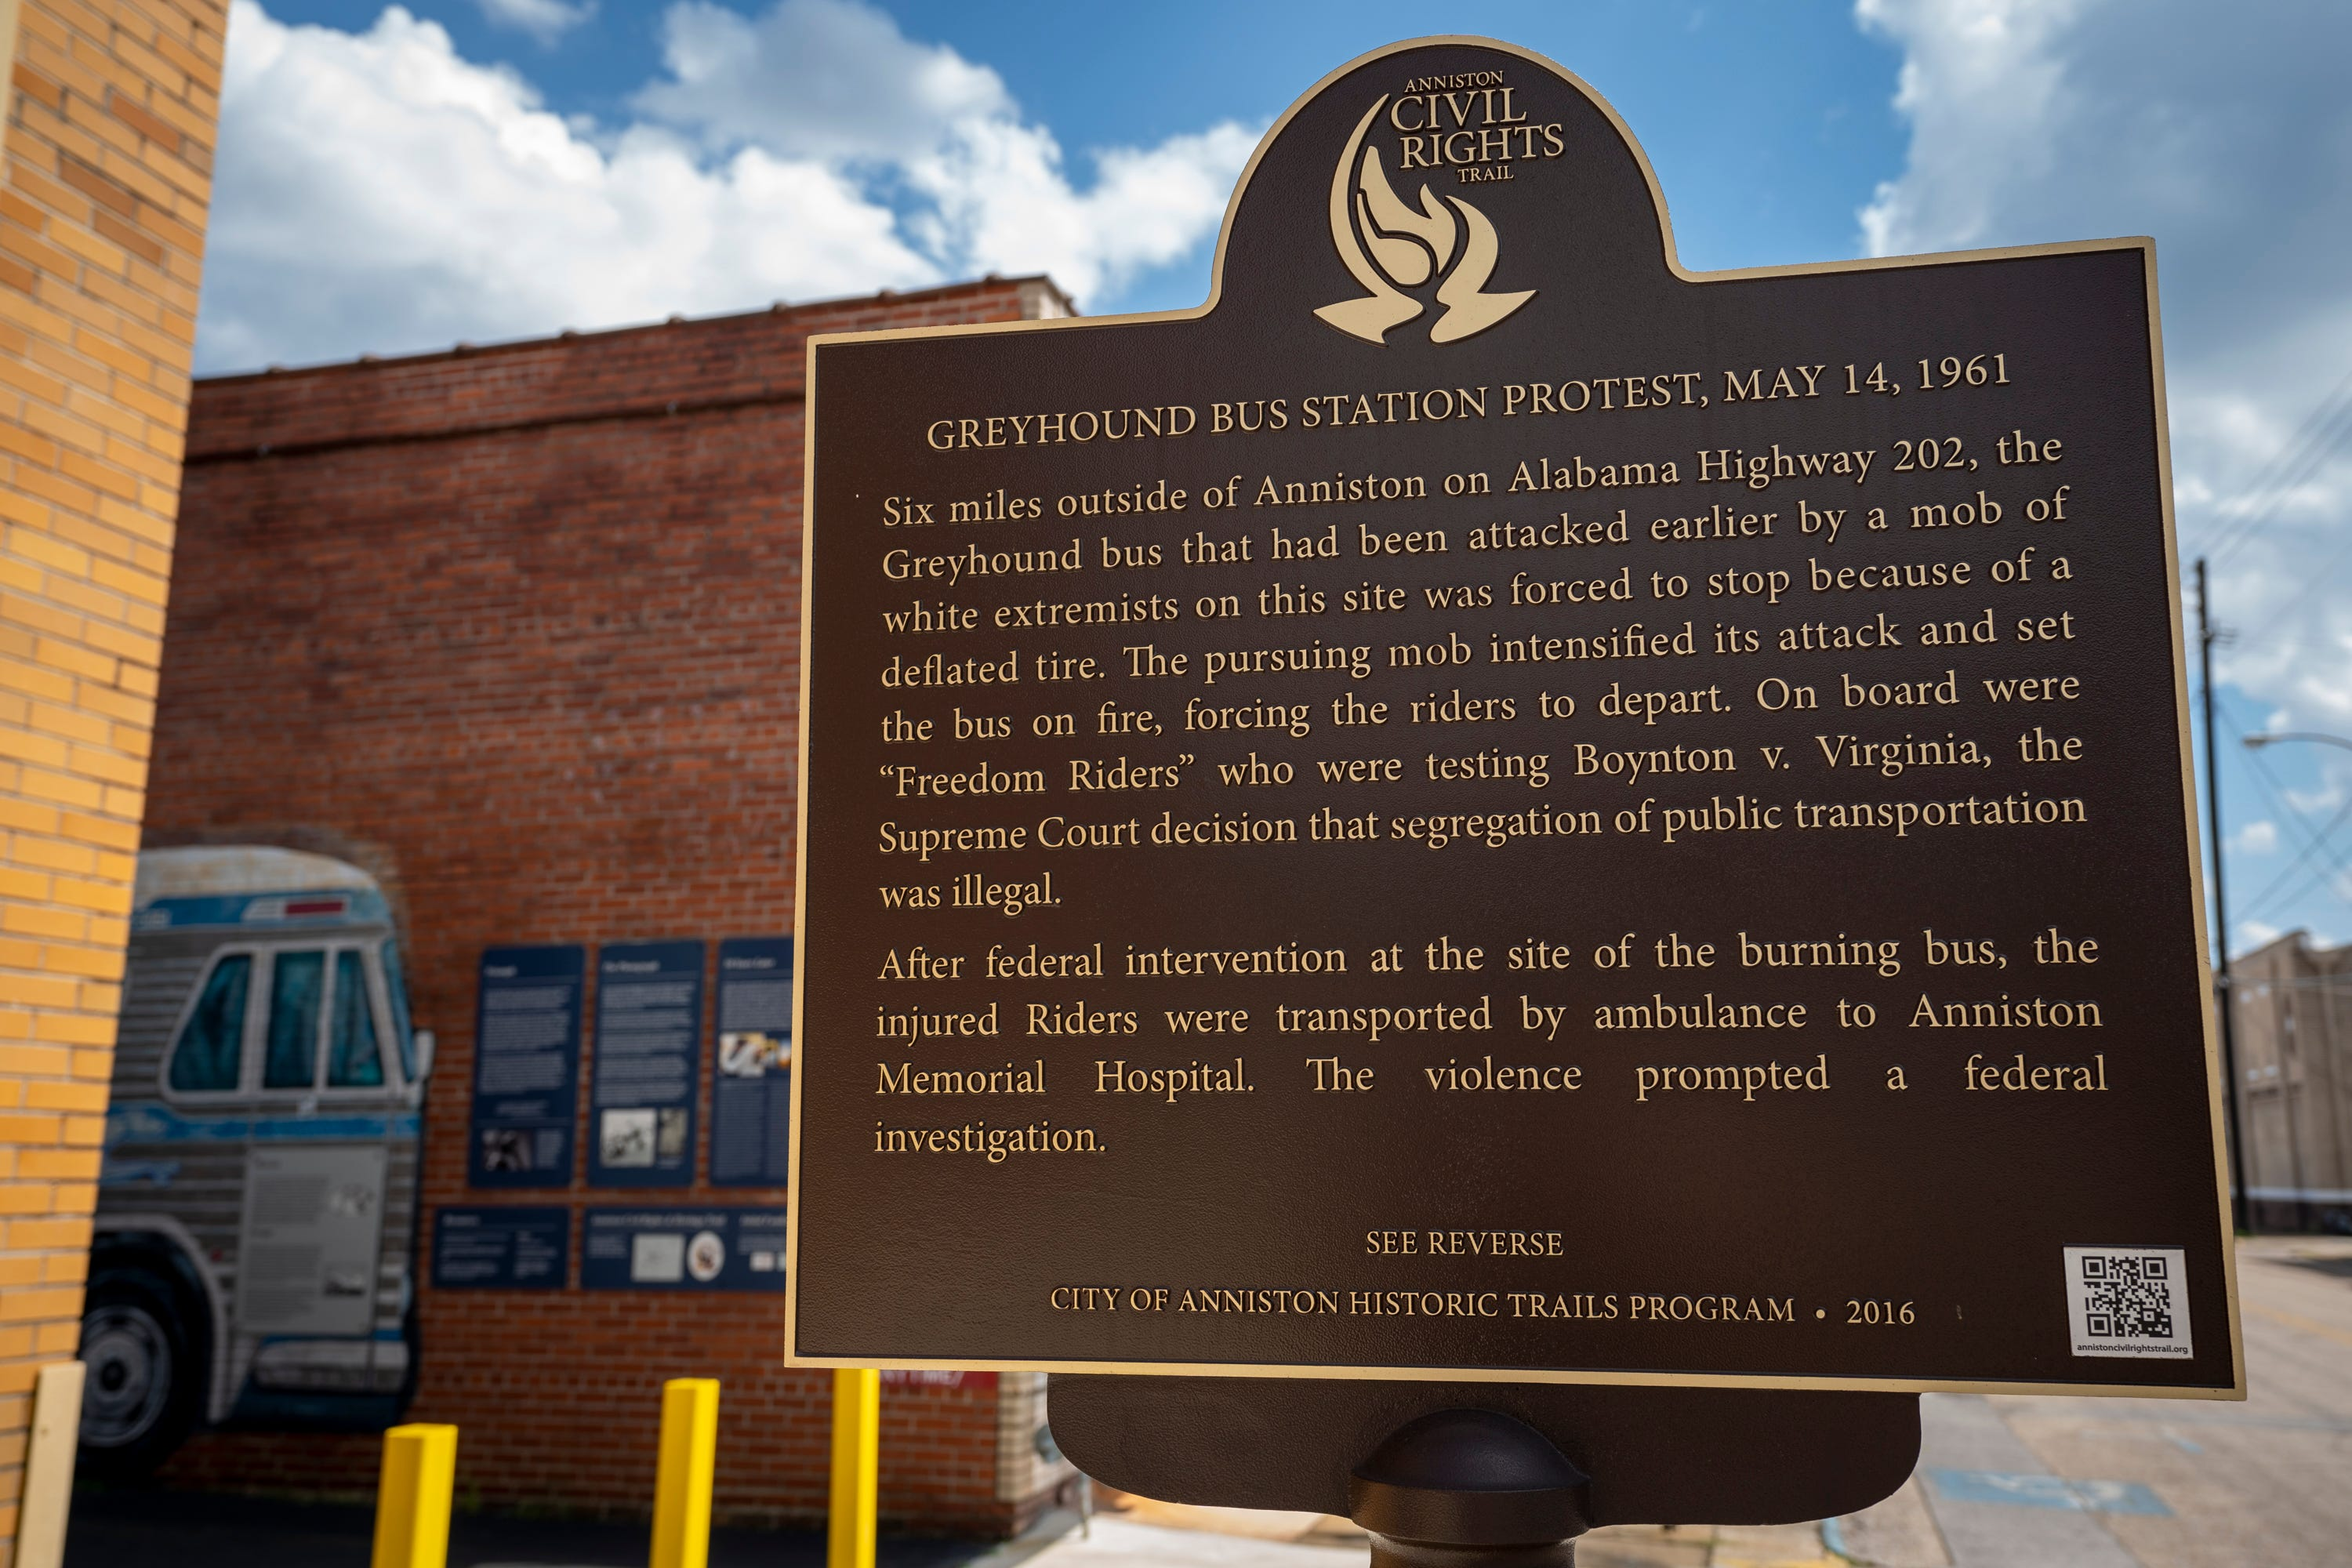 A historical marker describes what took place in the alley beside the Greyhound station where Freedom Riders were met by an angry mob in 1961, now preserved as the Freedom Riders National Monument, in Anniston, Ala., on August 13, 2021. Eleven days into the Freedom Rides aimed at ending segregation, Hank Thomas and other Freedom Riders huddled on a bus on May 14, 1961, just outside Anniston, Alabama, as a white mob slashed tires on their bus, pounded it with tire irons and then threw a firebomb inside. As flames spread, the civil rights activists scrambled off the bus into the angry crowd that beat them with bats, fists and those same tire irons. That brutal confrontation could have ended the group's 14-day mission to desegregate public interstate accommodations. Instead, more Freedom Riders boarded buses headed into hostile territory. The rides focused attention on the violent resistance to segregation and are credited with helping integrate accommodations.